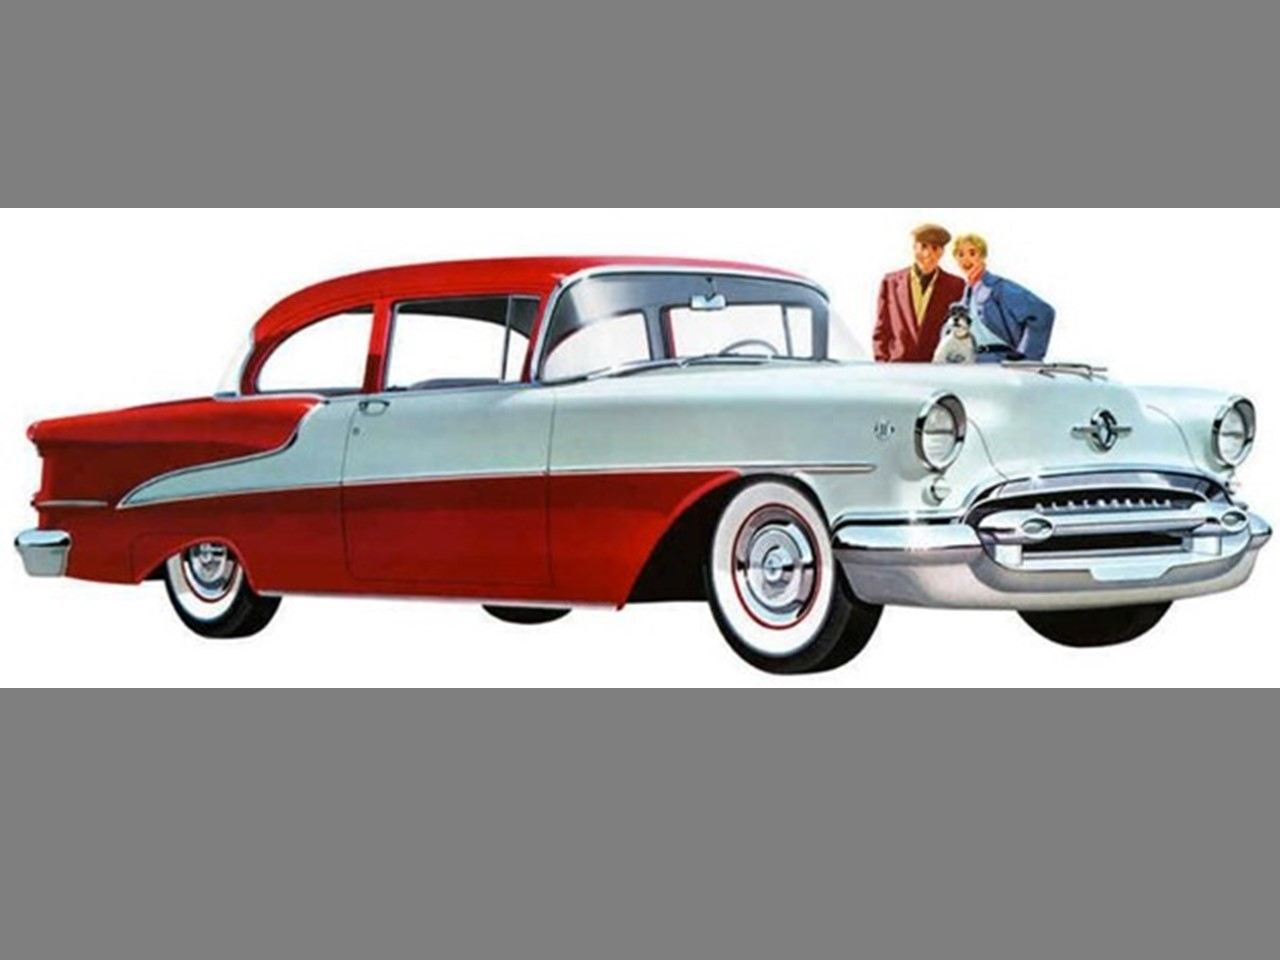 1955 Oldsmobile Super 88 Two-Door Sedan